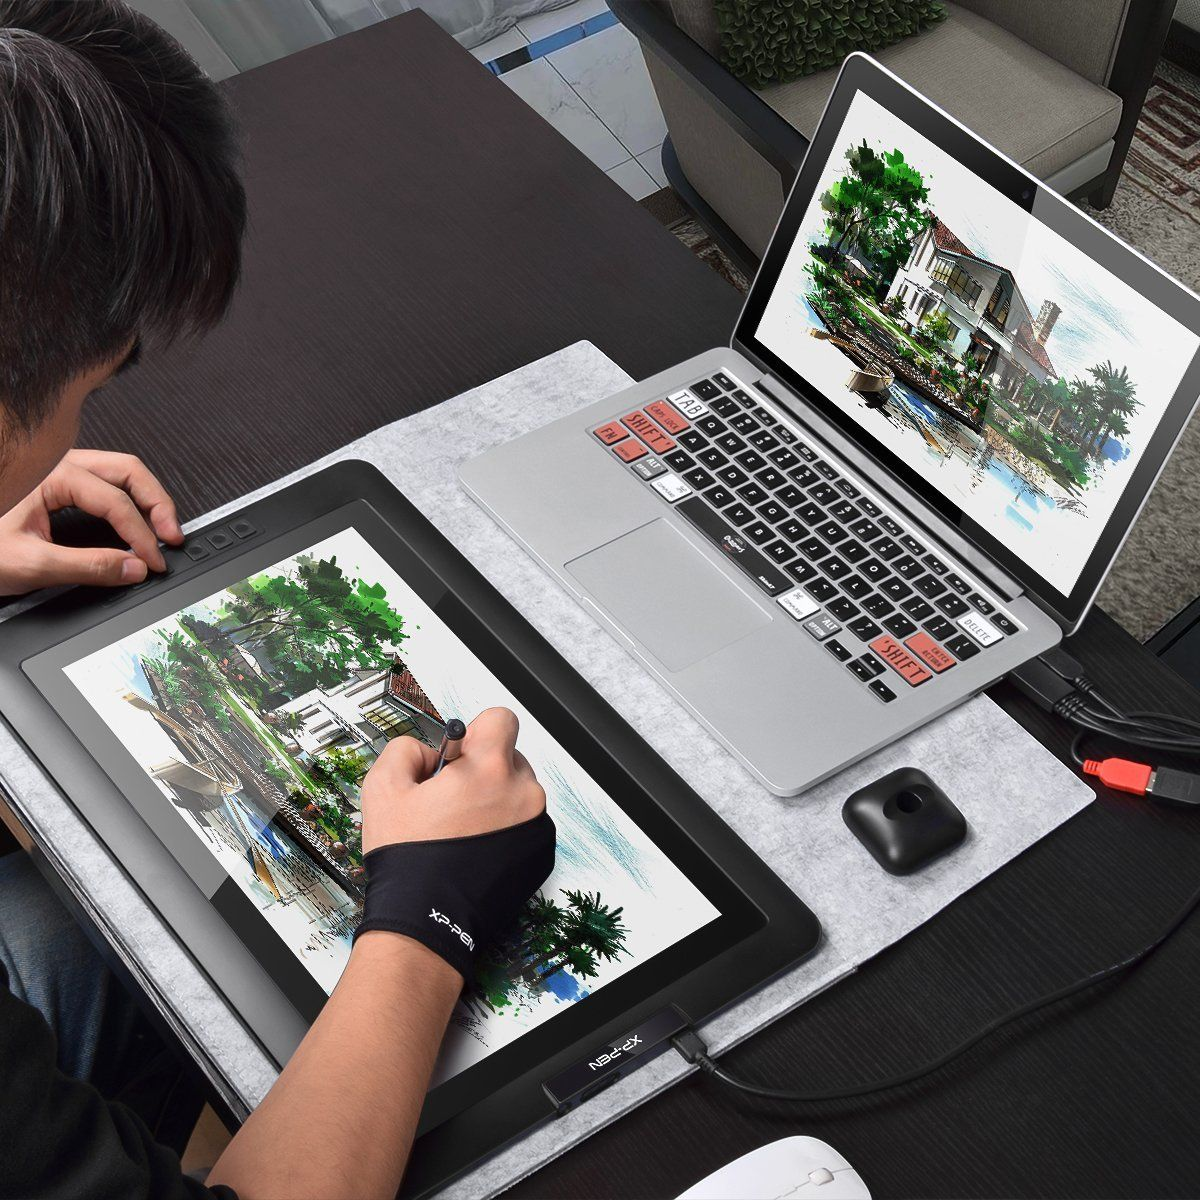 Bring your artwork to life on this digital sketching tablet